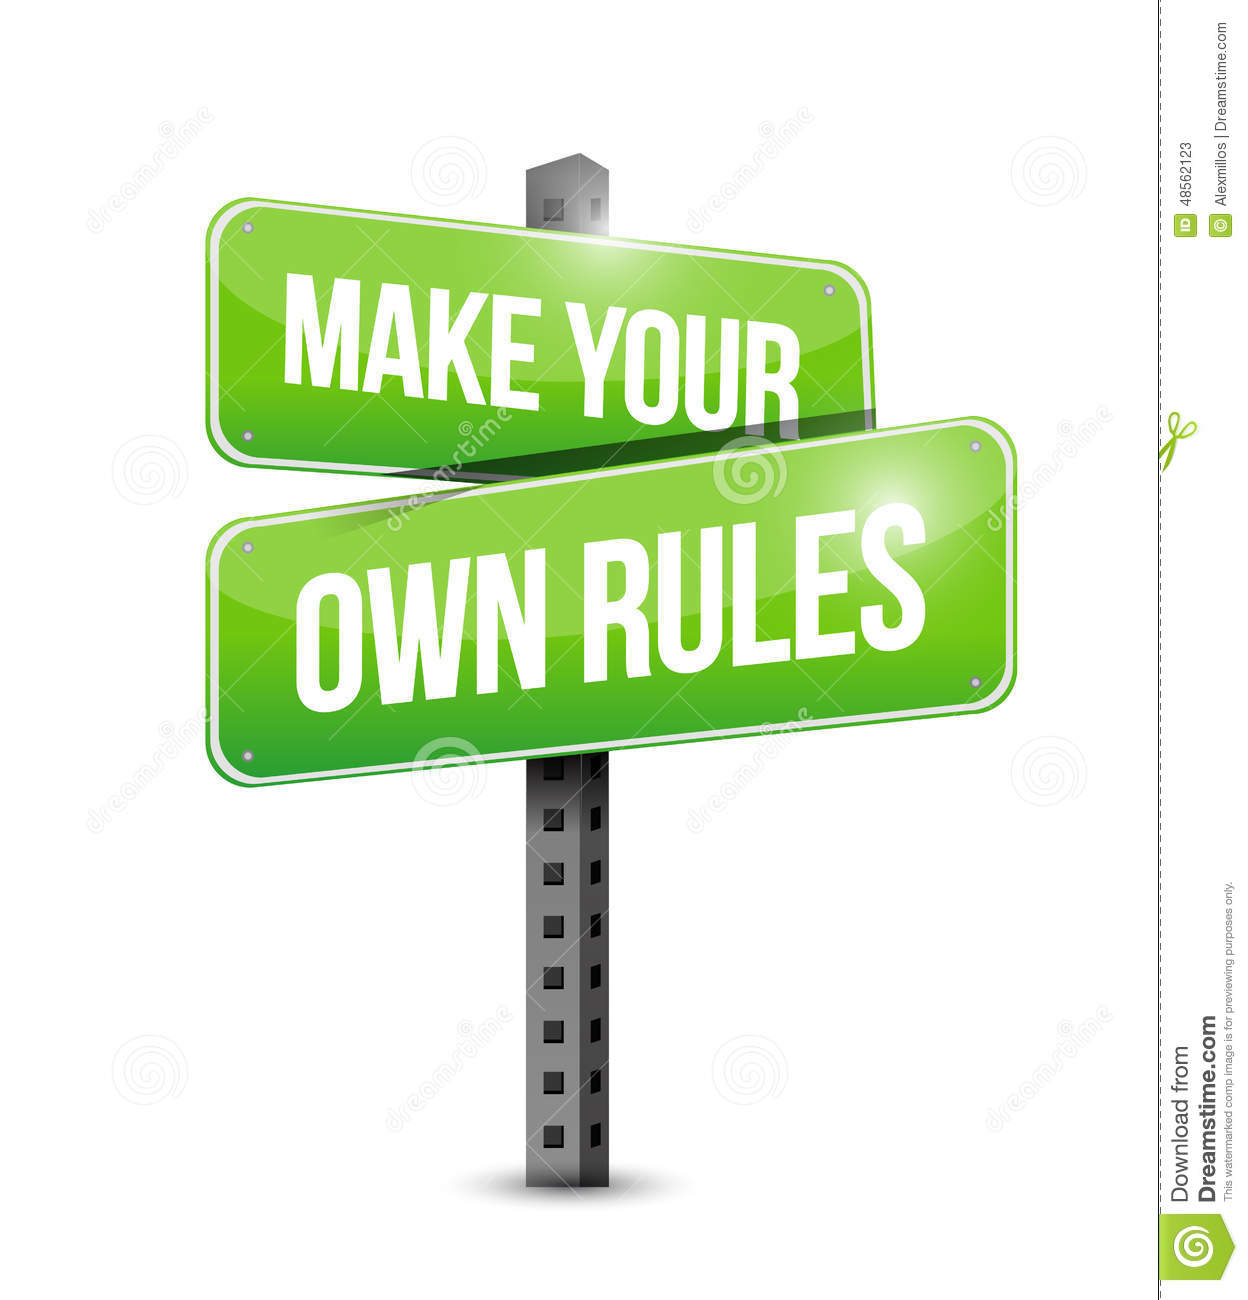 Make your own rules street sign stock illustration for Create your own